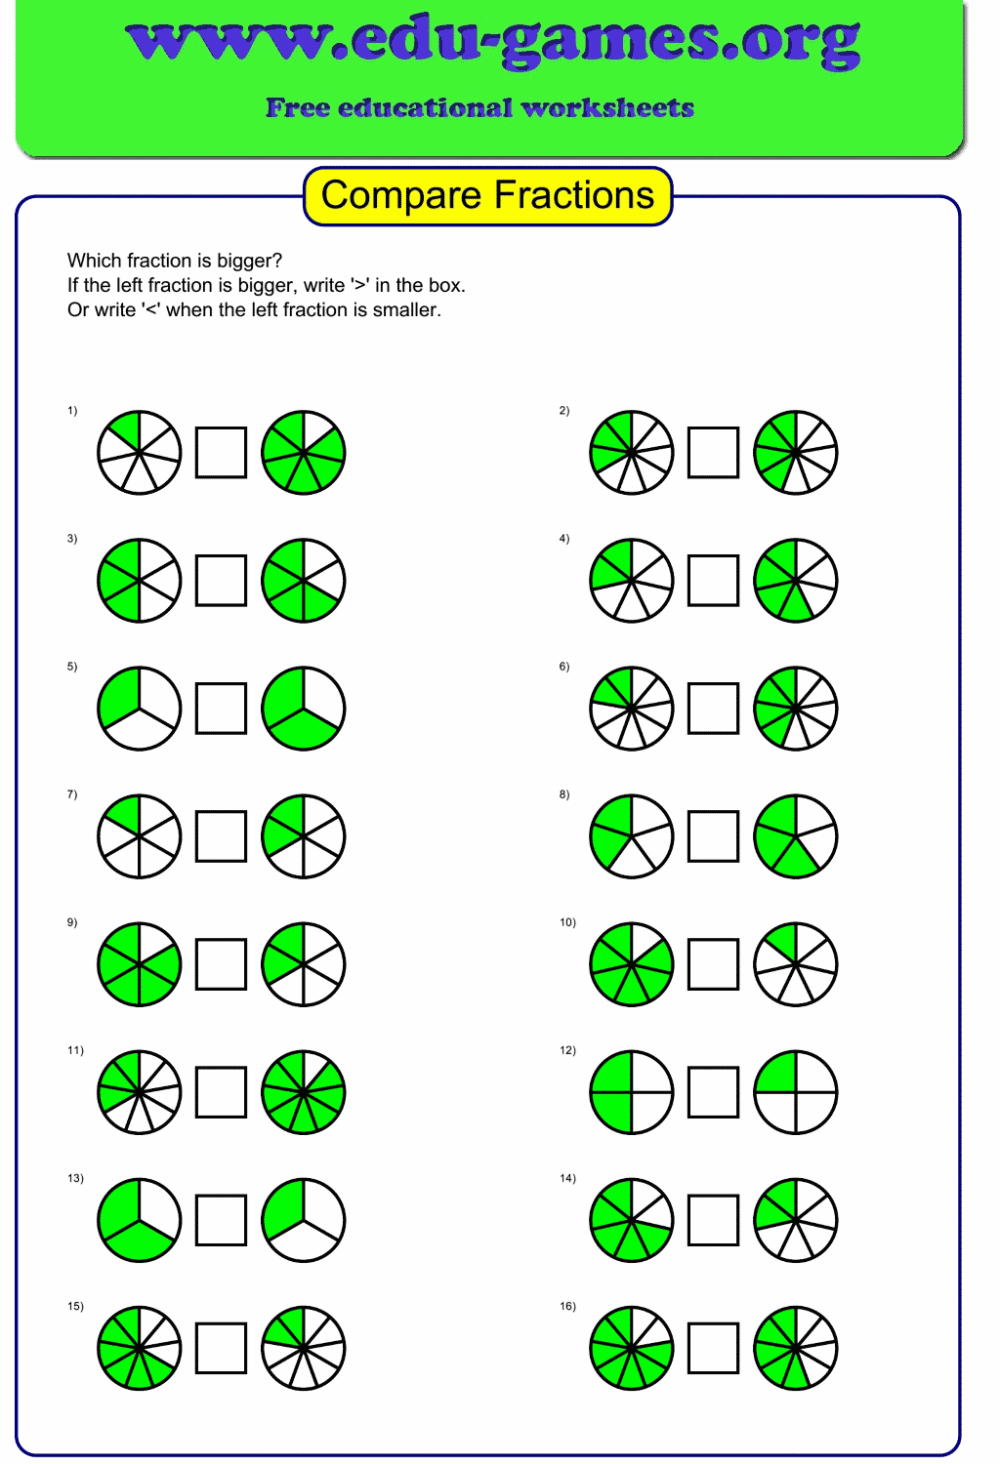 medium resolution of Compare Graphical Fractions Worksheet   Free Printable Worksheets